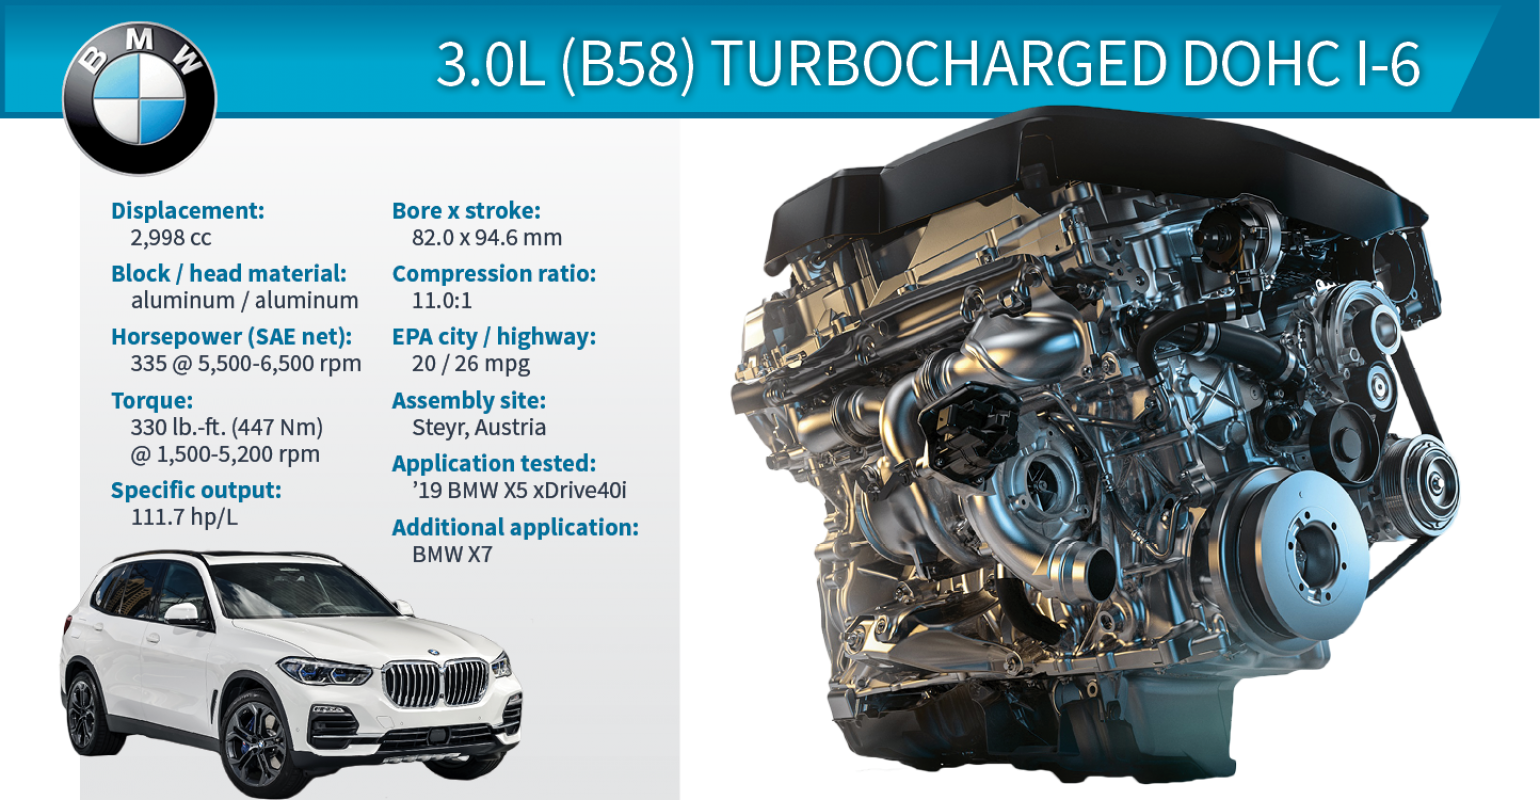 2019 Wards 10 Best Engines Winner | BMW X5 3 0L (B58) Turbo